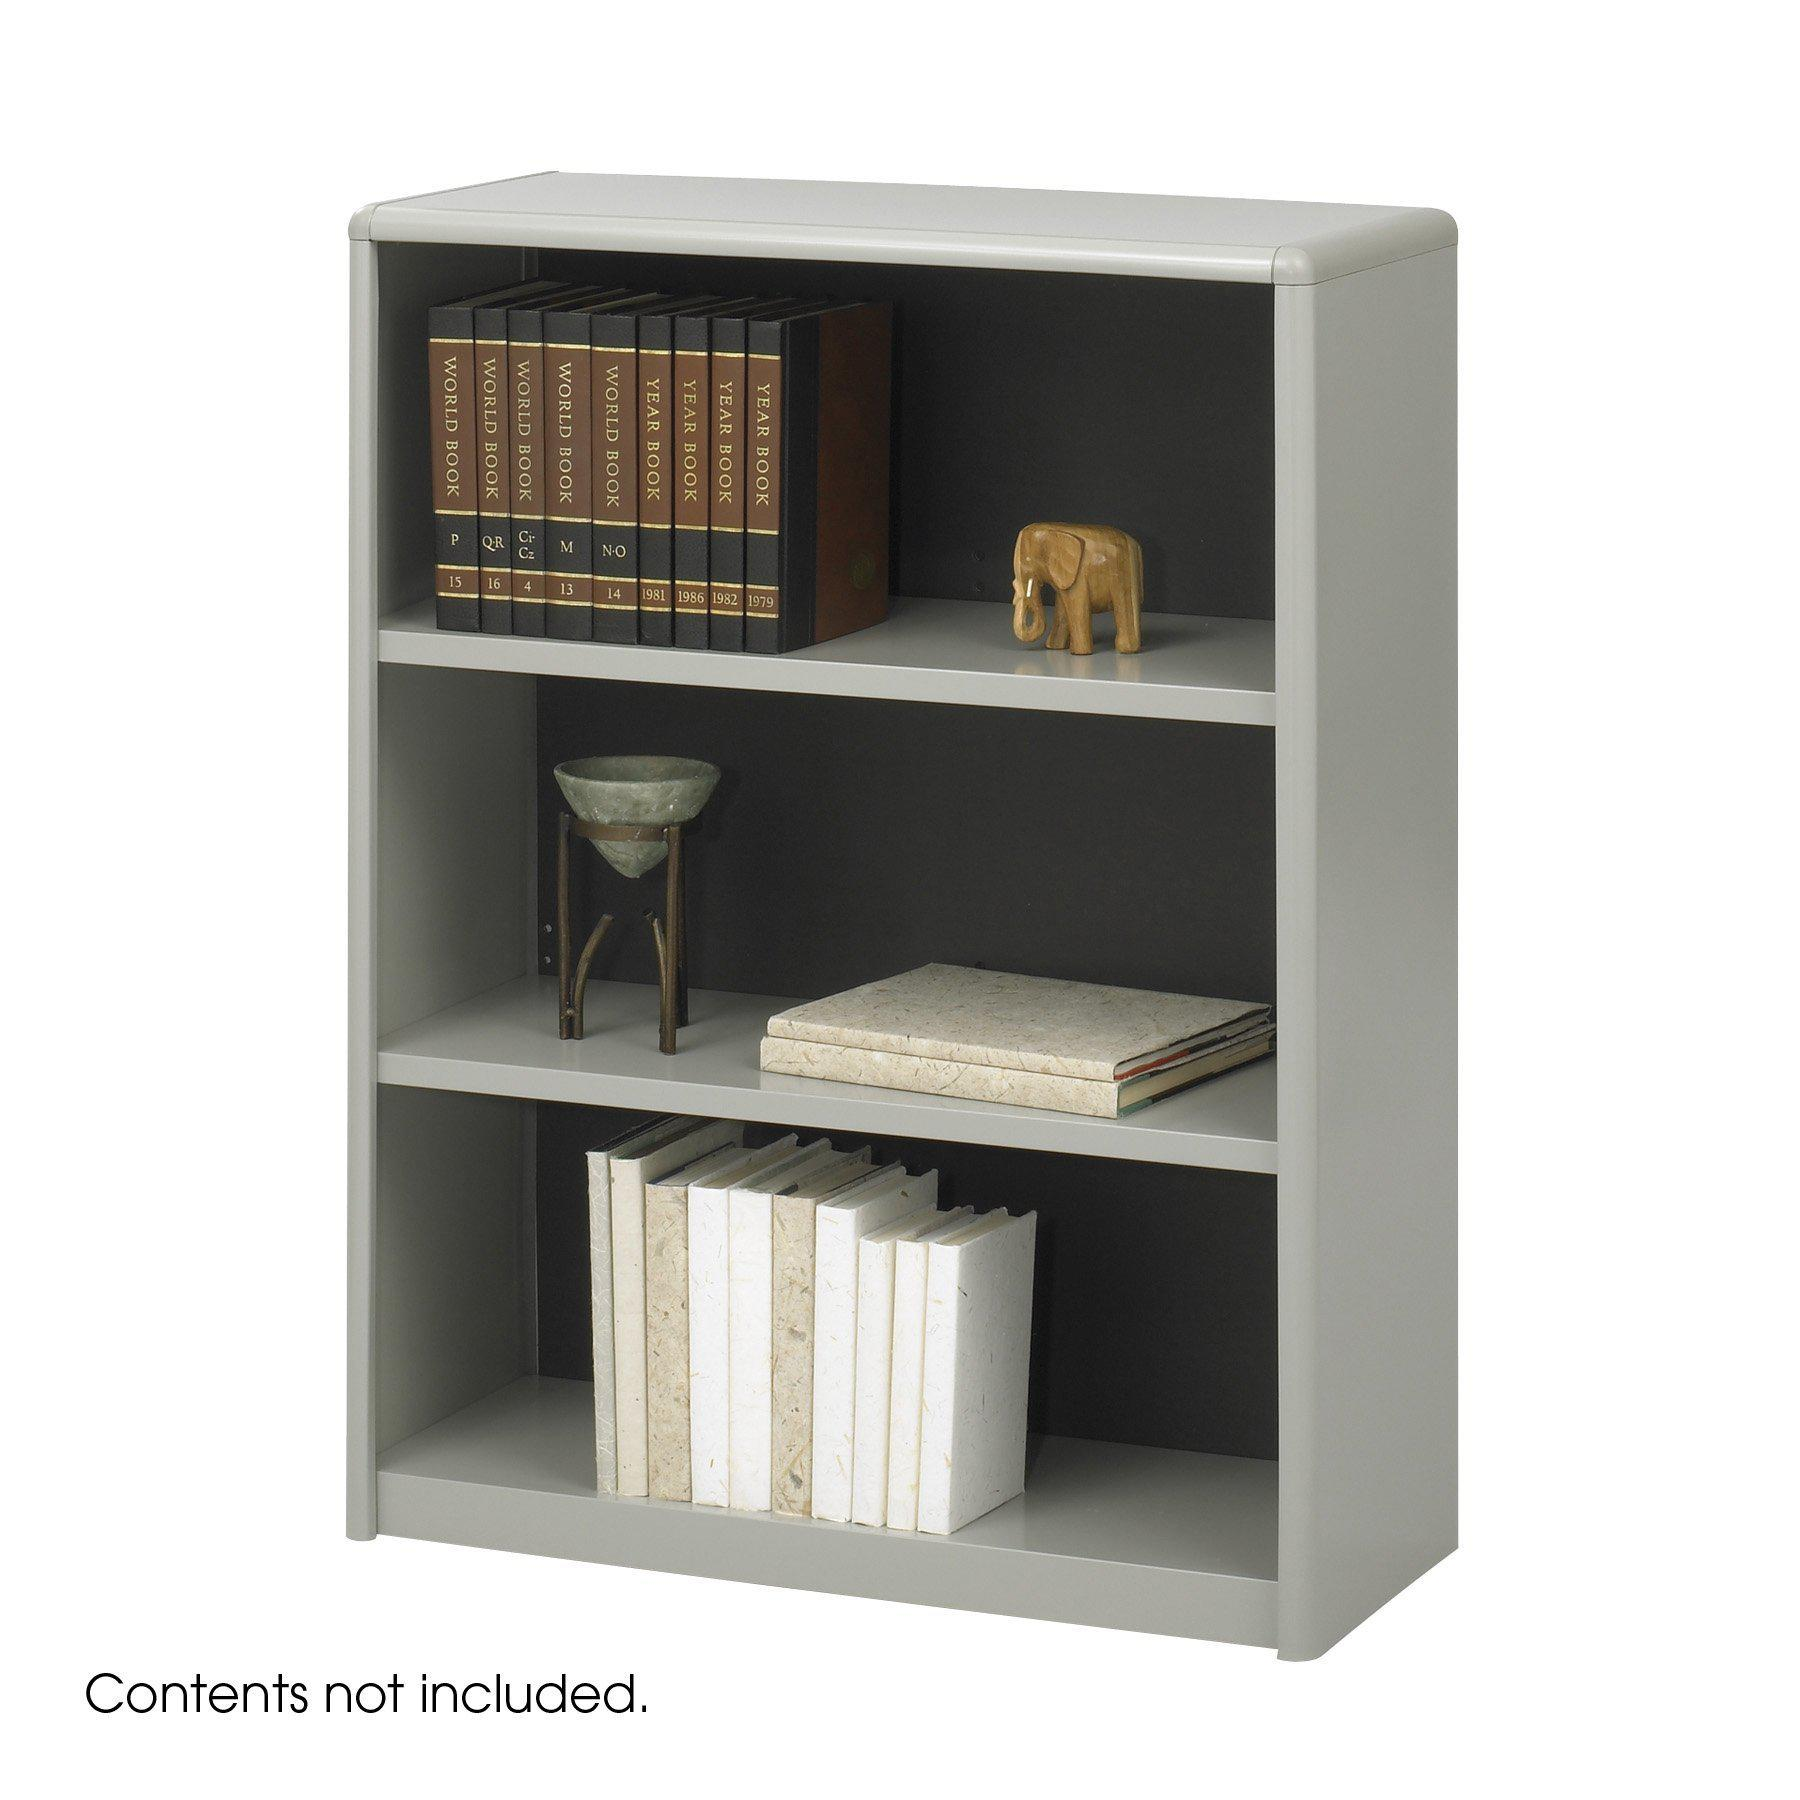 3-Shelf ValueMate® Economy Bookcase